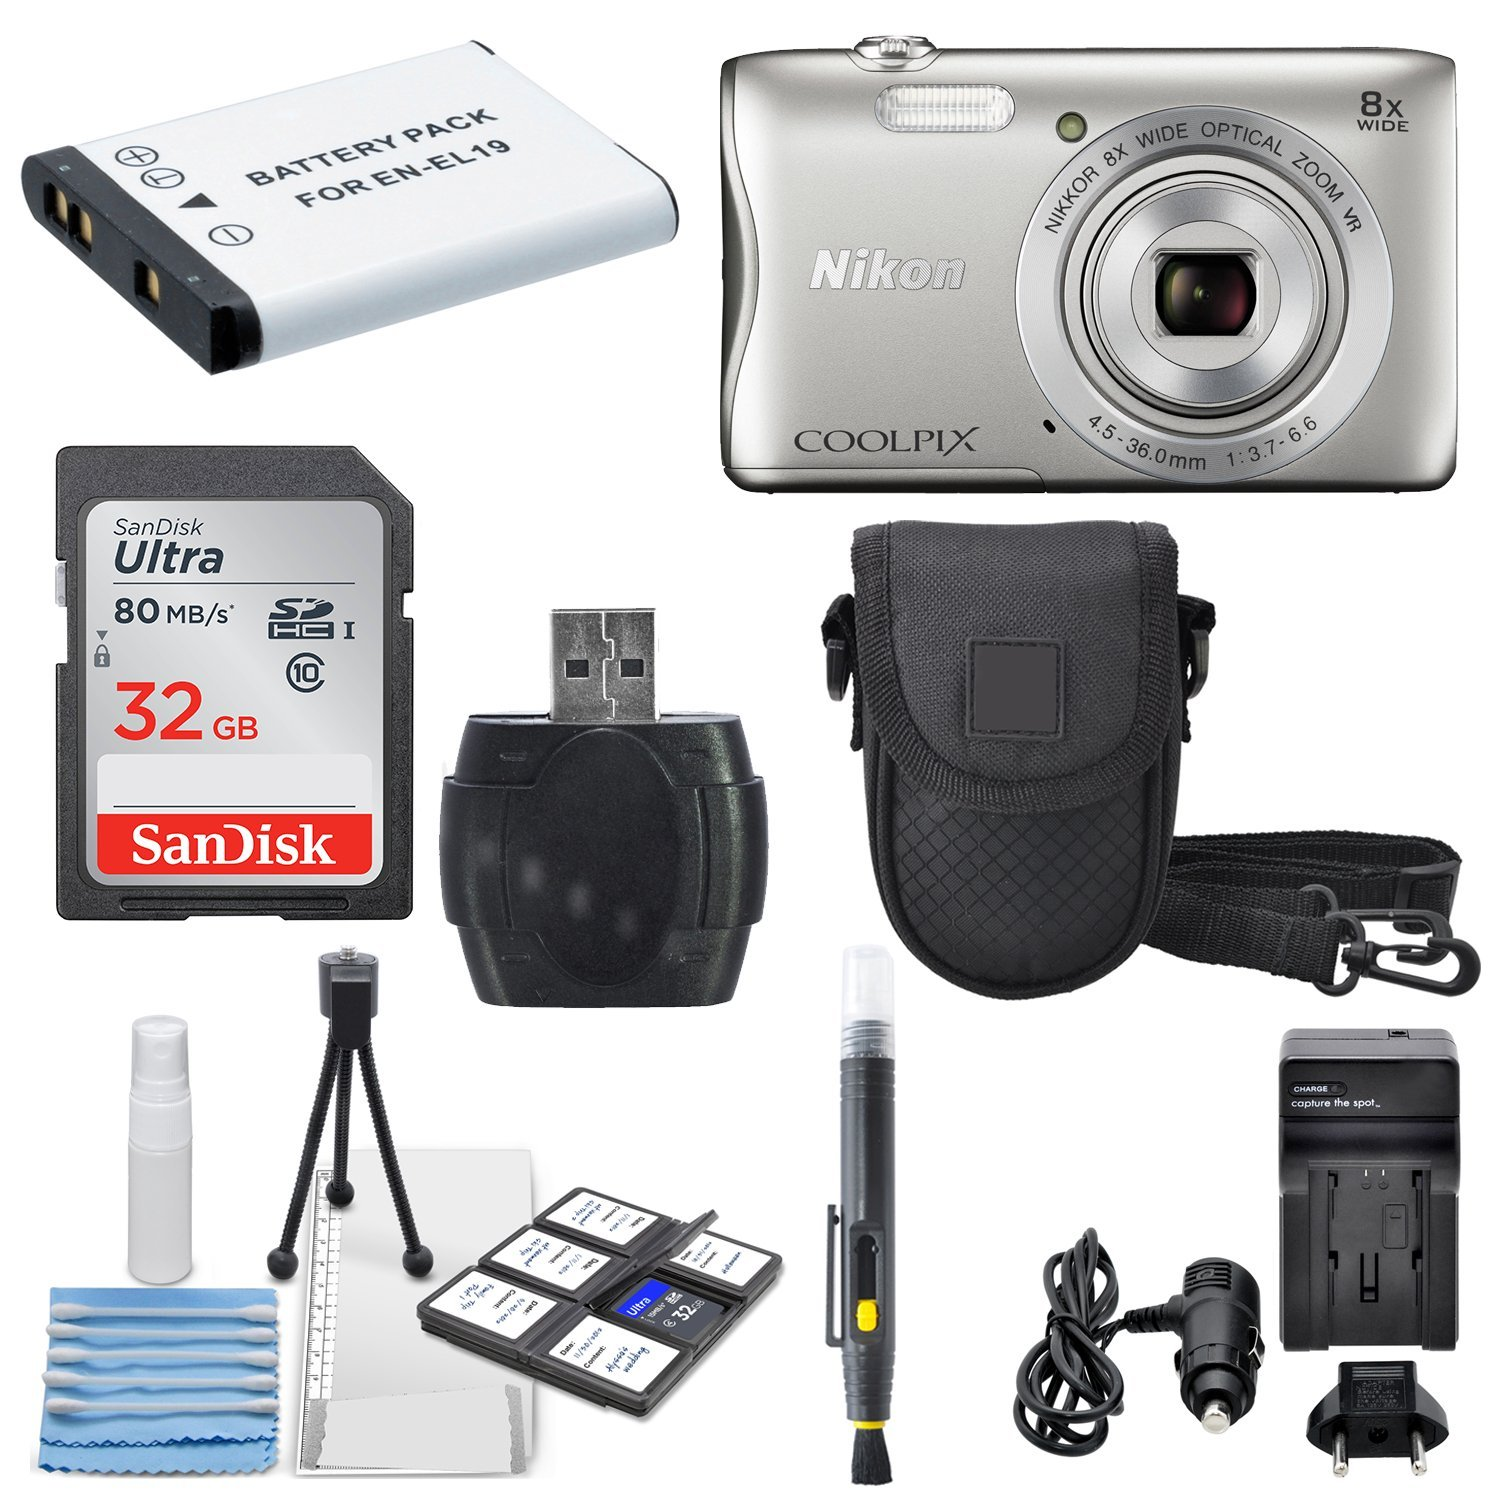 Nikon COOLPIX S3700 Wi- Fi enabled Digital Camera with 8x Optical Zoom (Silver) +32 GB Memory Card + AC/DC Turbo Travel Charger + Extra Battery Along With a Deluxe Accessory Bundle